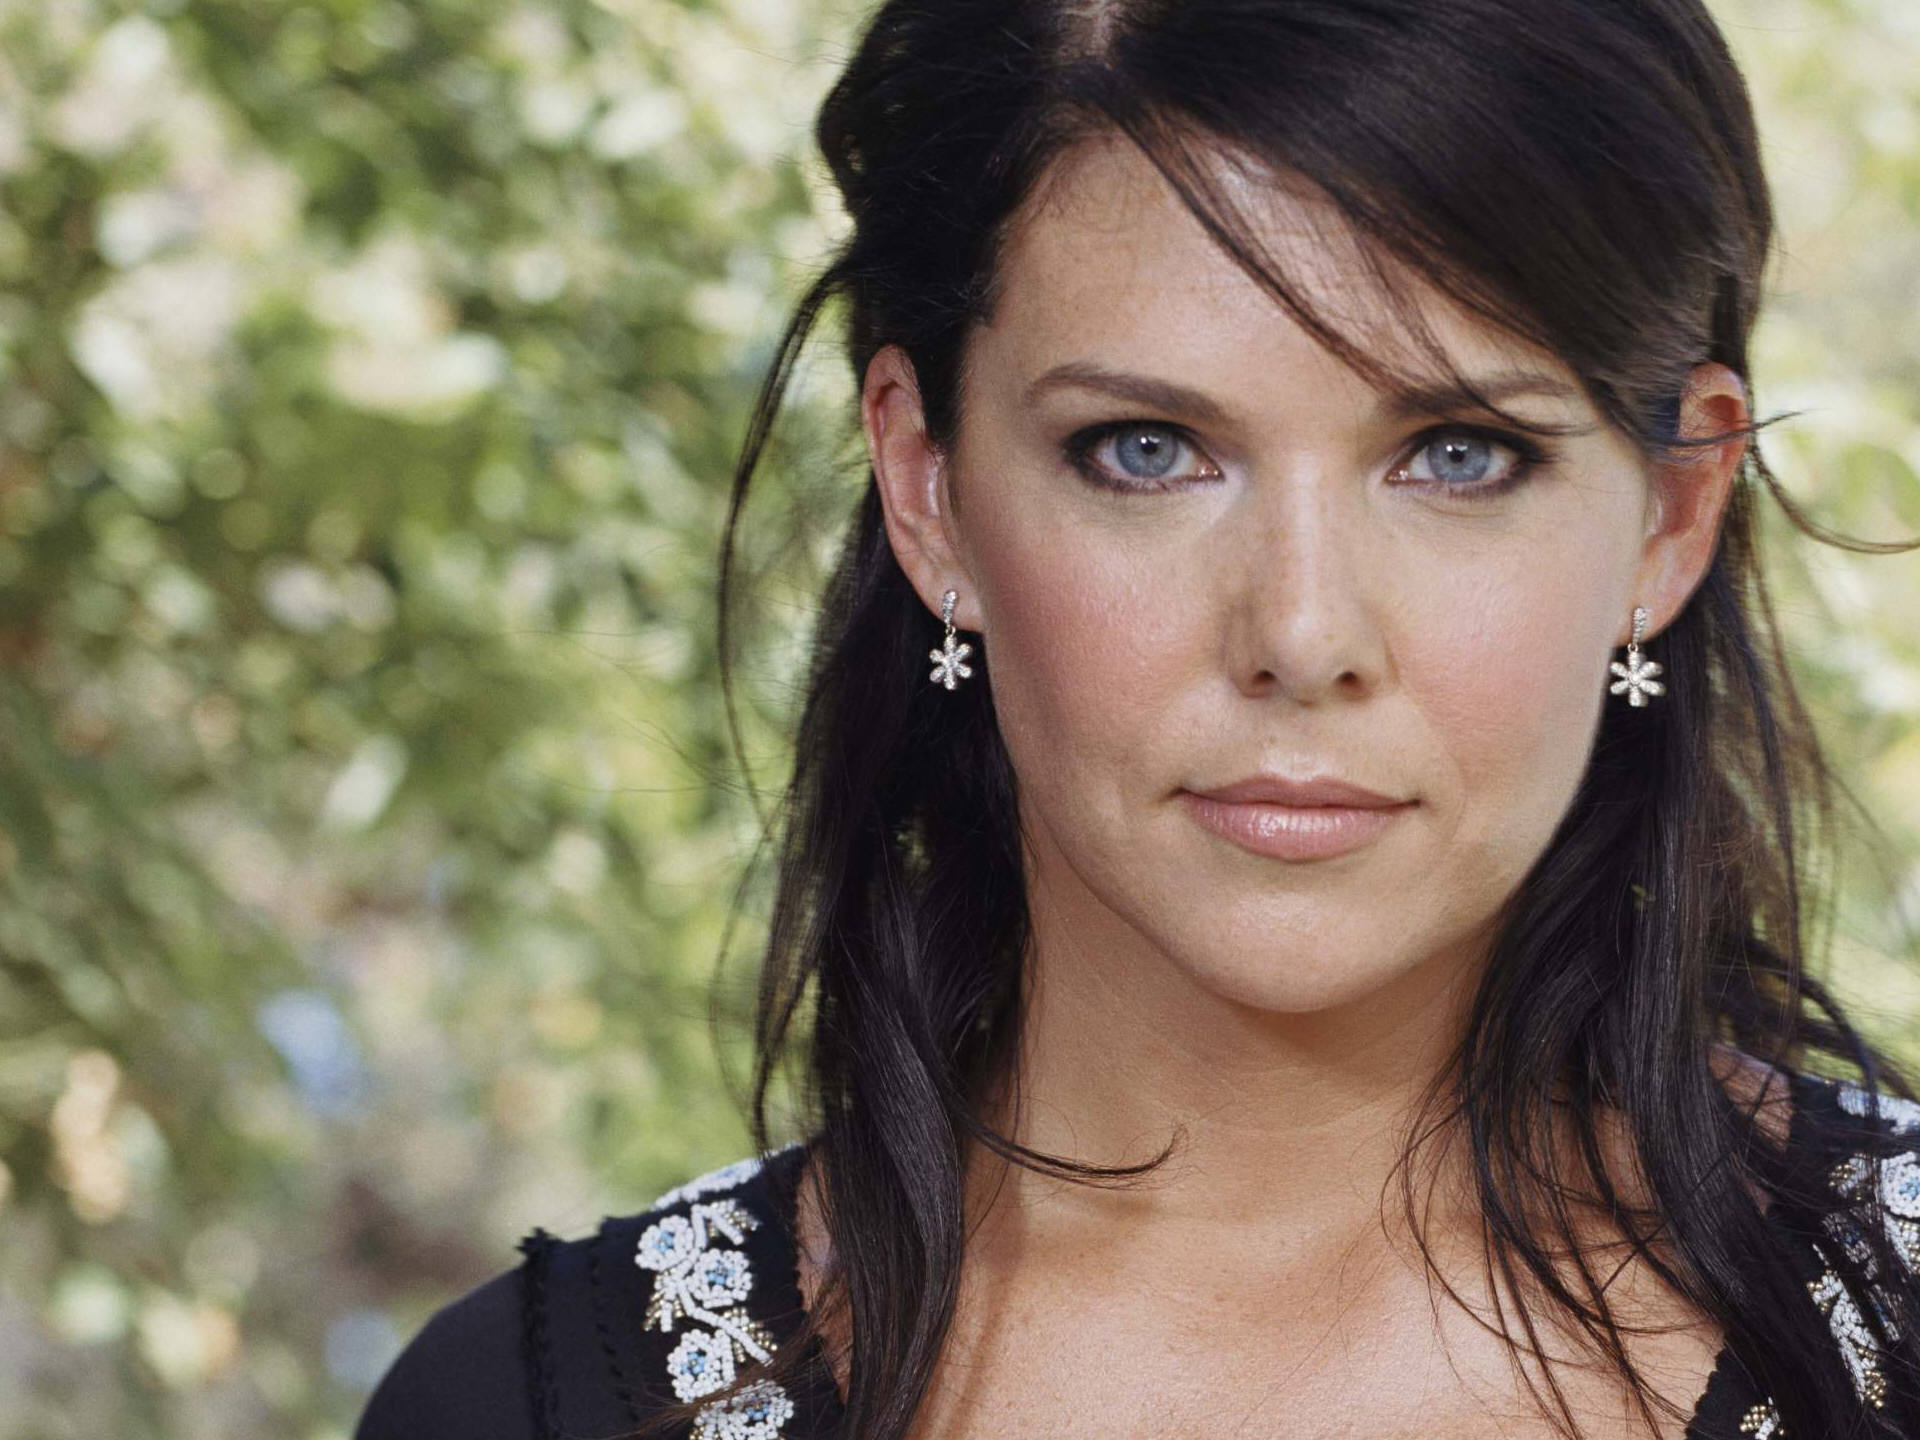 Hd Wallpaper Little Girls Wedding Pictures Of Lauren Graham Pictures Of Celebrities